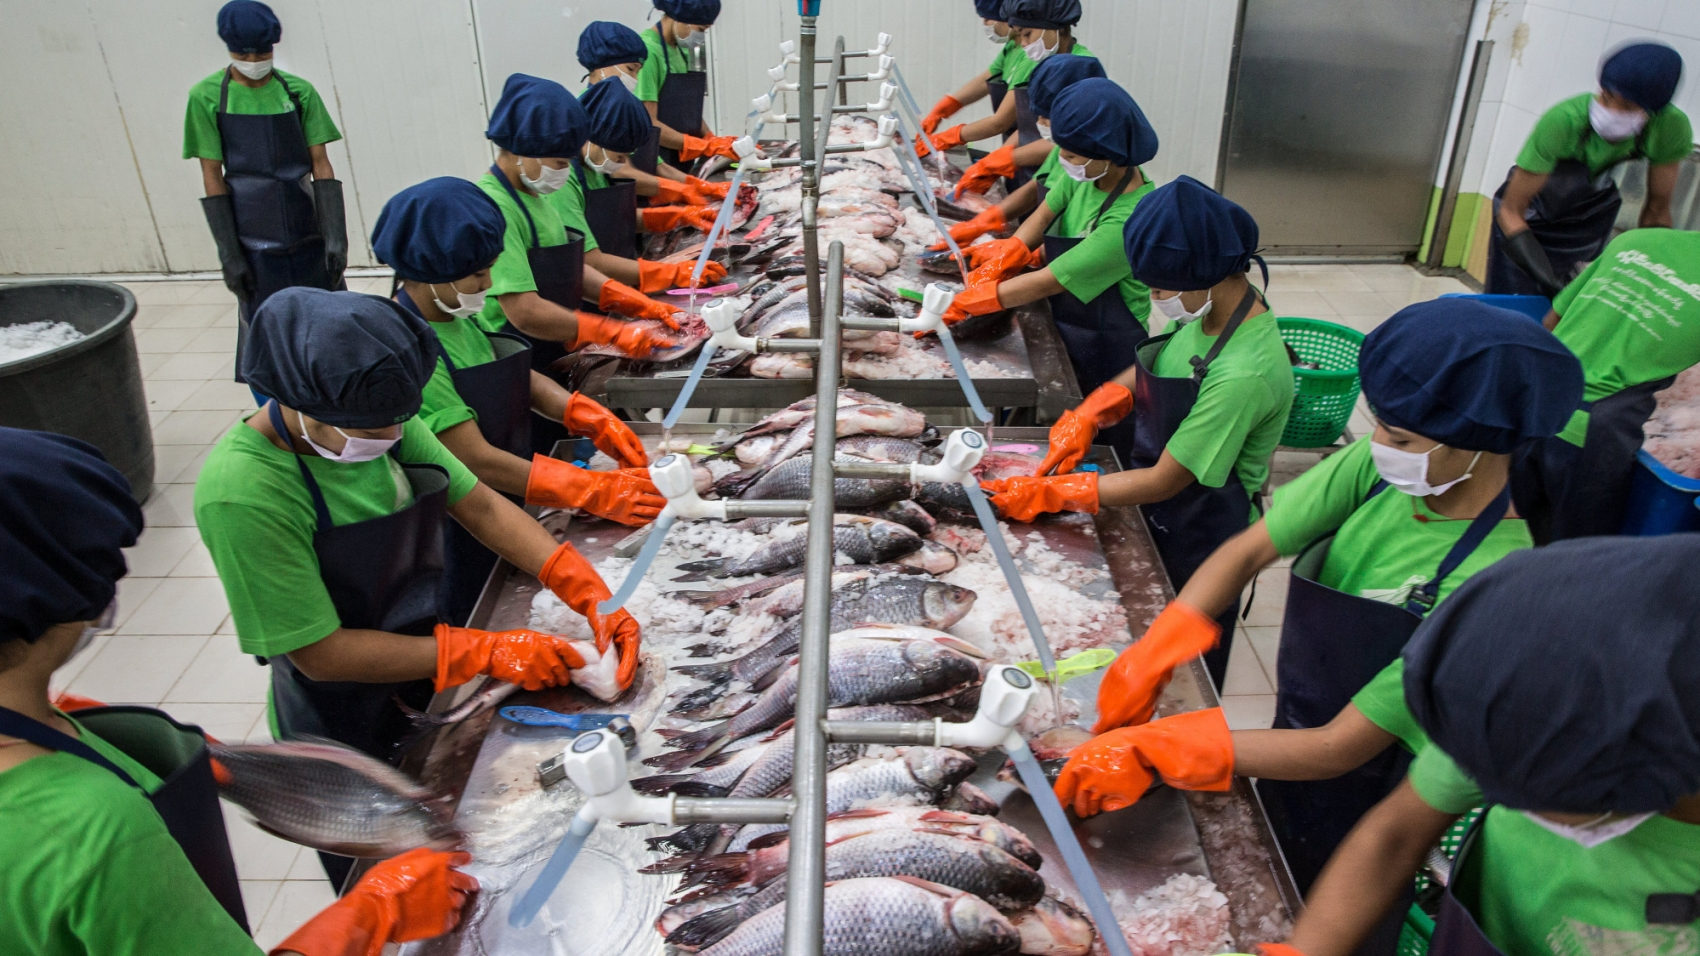 Employees clean and wash farmed fish at Hlaing Htate Khaung Cold Store in Yangon, Myanmar on August 29, 2018.  Photograph: Taylor Weidman/Bloomberg